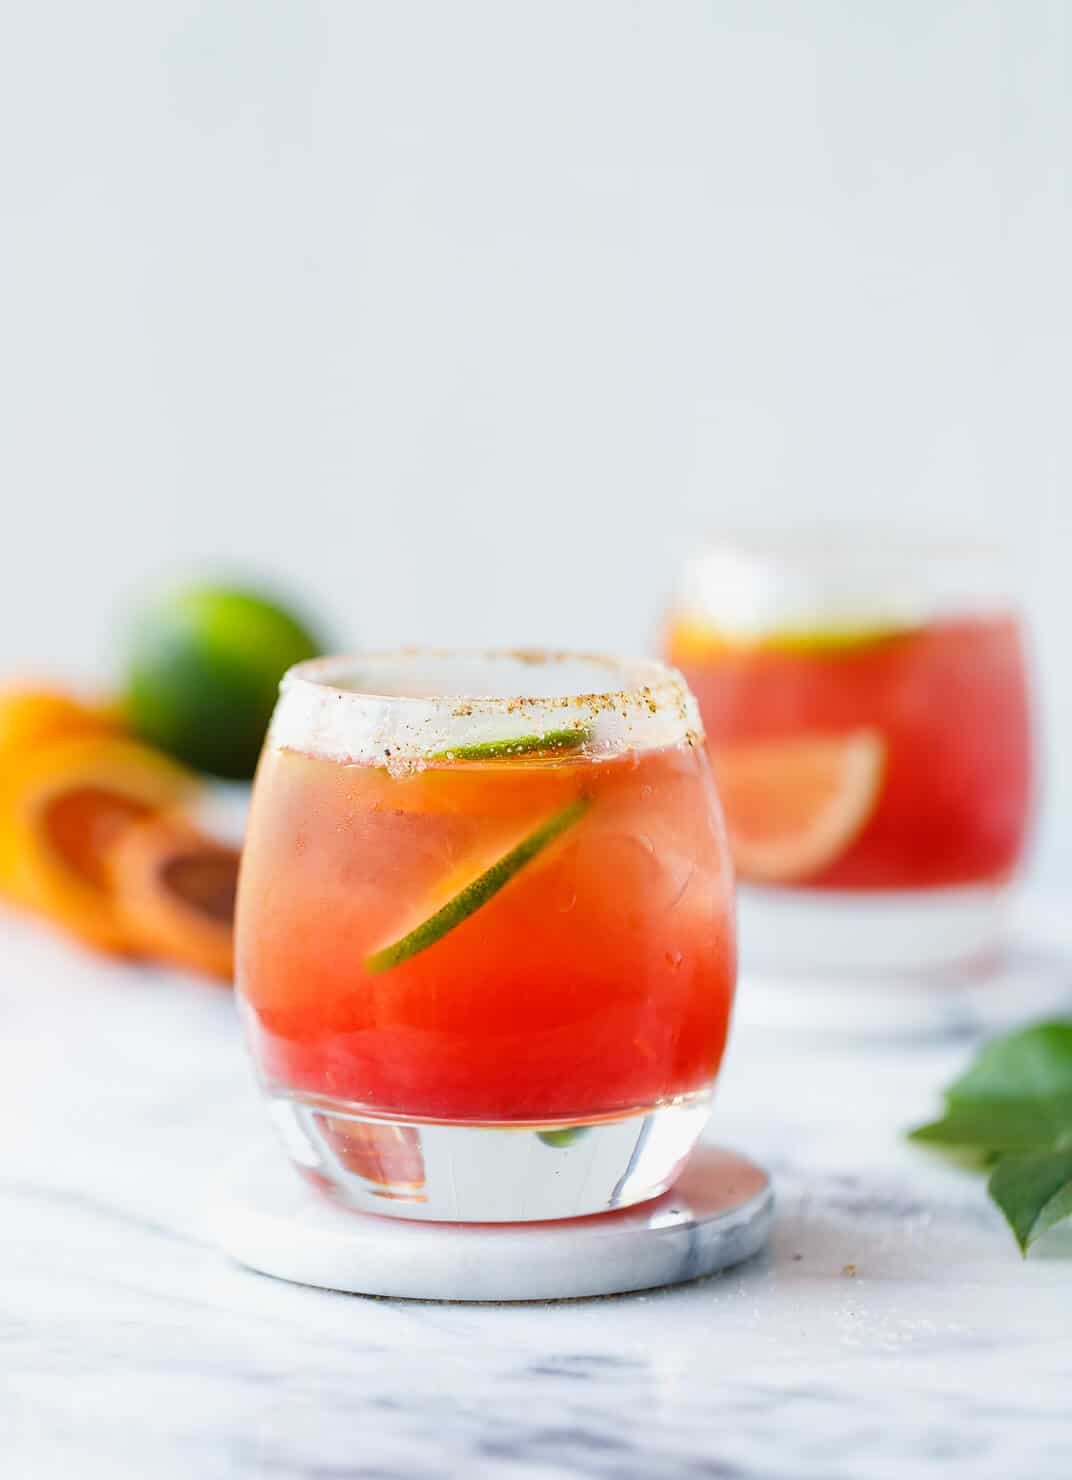 Blood Orange Margarita Recipe (Sugar Free) - fruity, fresh and delicious cocktail for spring.